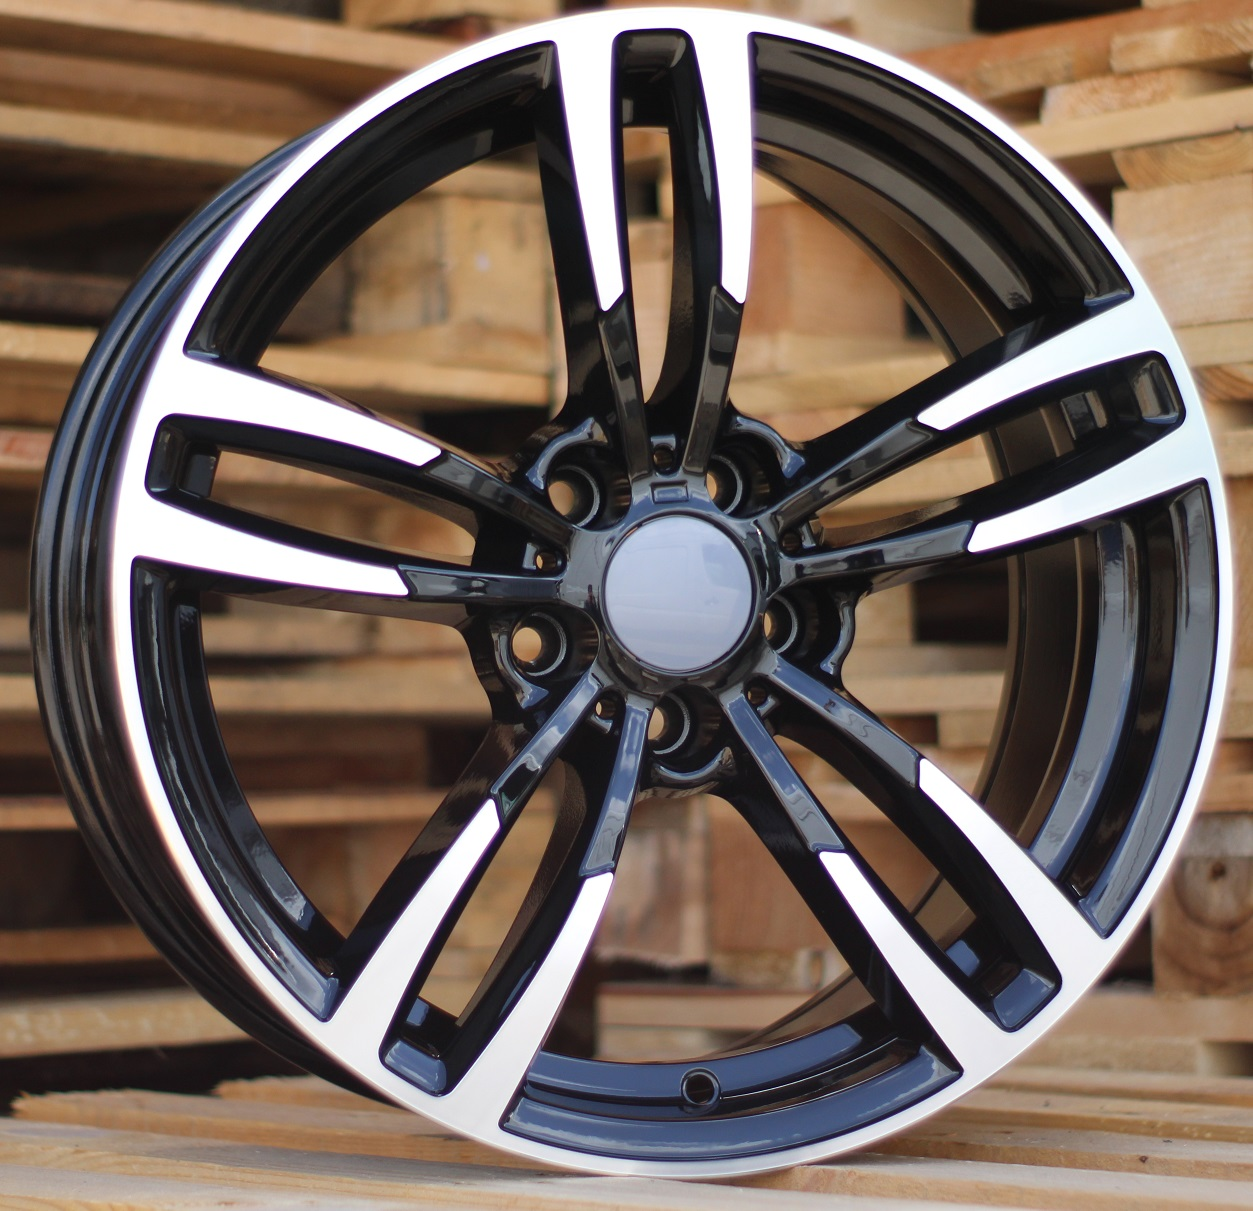 B17X8 5X120 ET34 72.6 BK855 (BY1121) MB+Powder Coating RWR BM (+3eur) (R)## 8x17 ET35 5x120